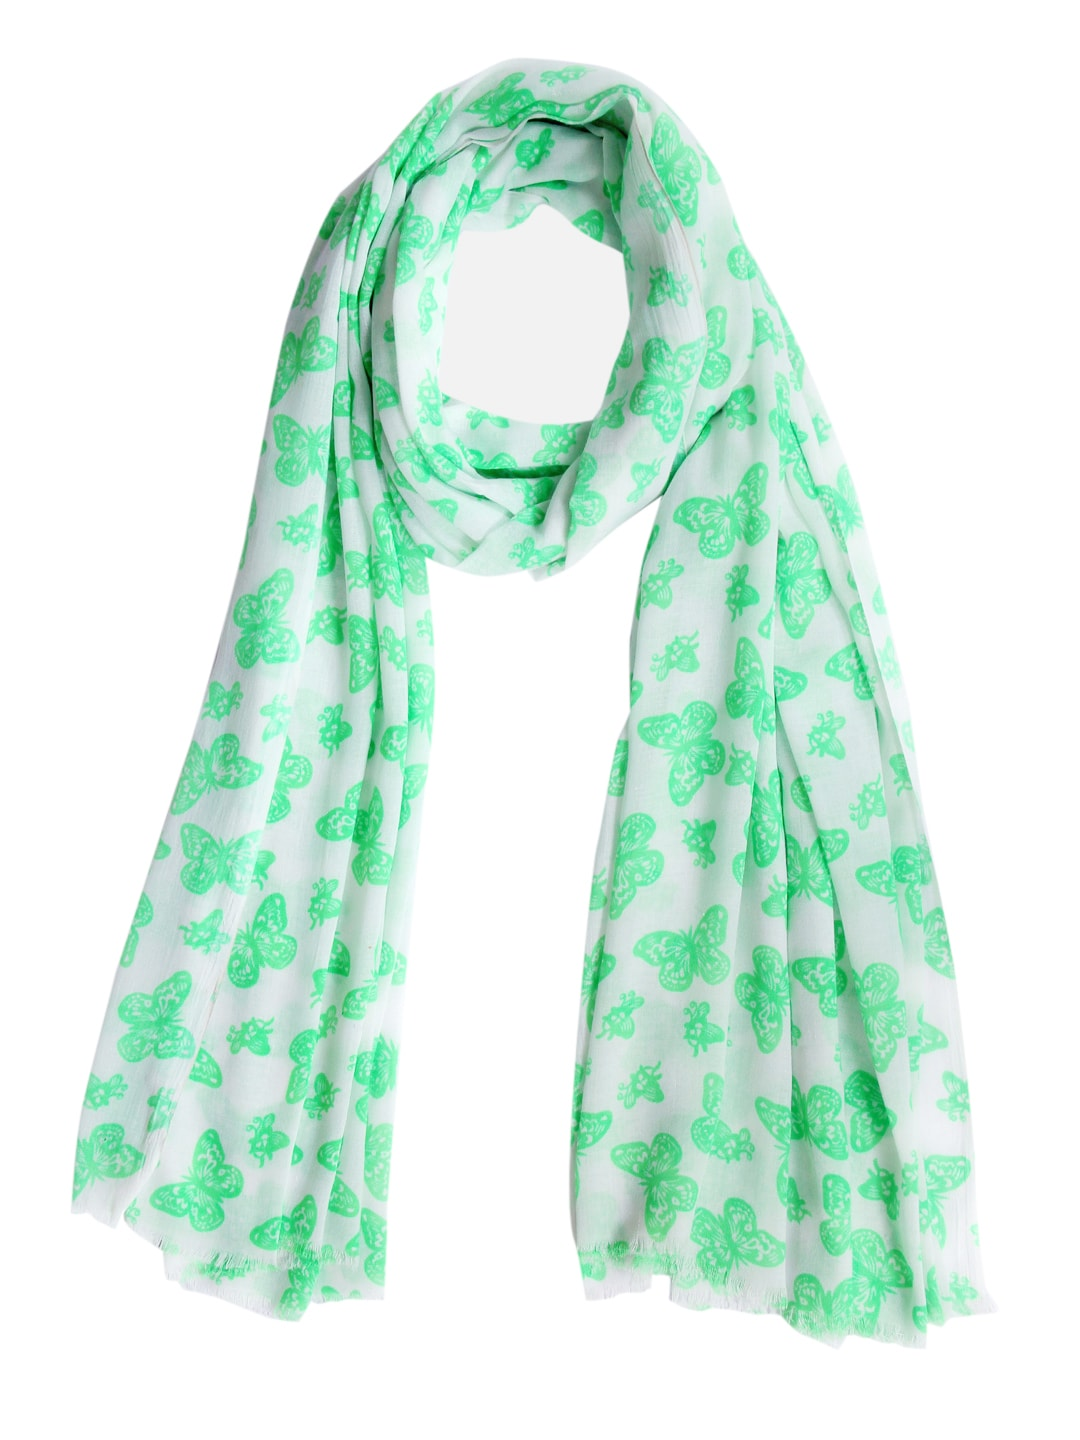 Tassels Tassels Women Fluorescent Green & White Printed Stole (Multicolor)